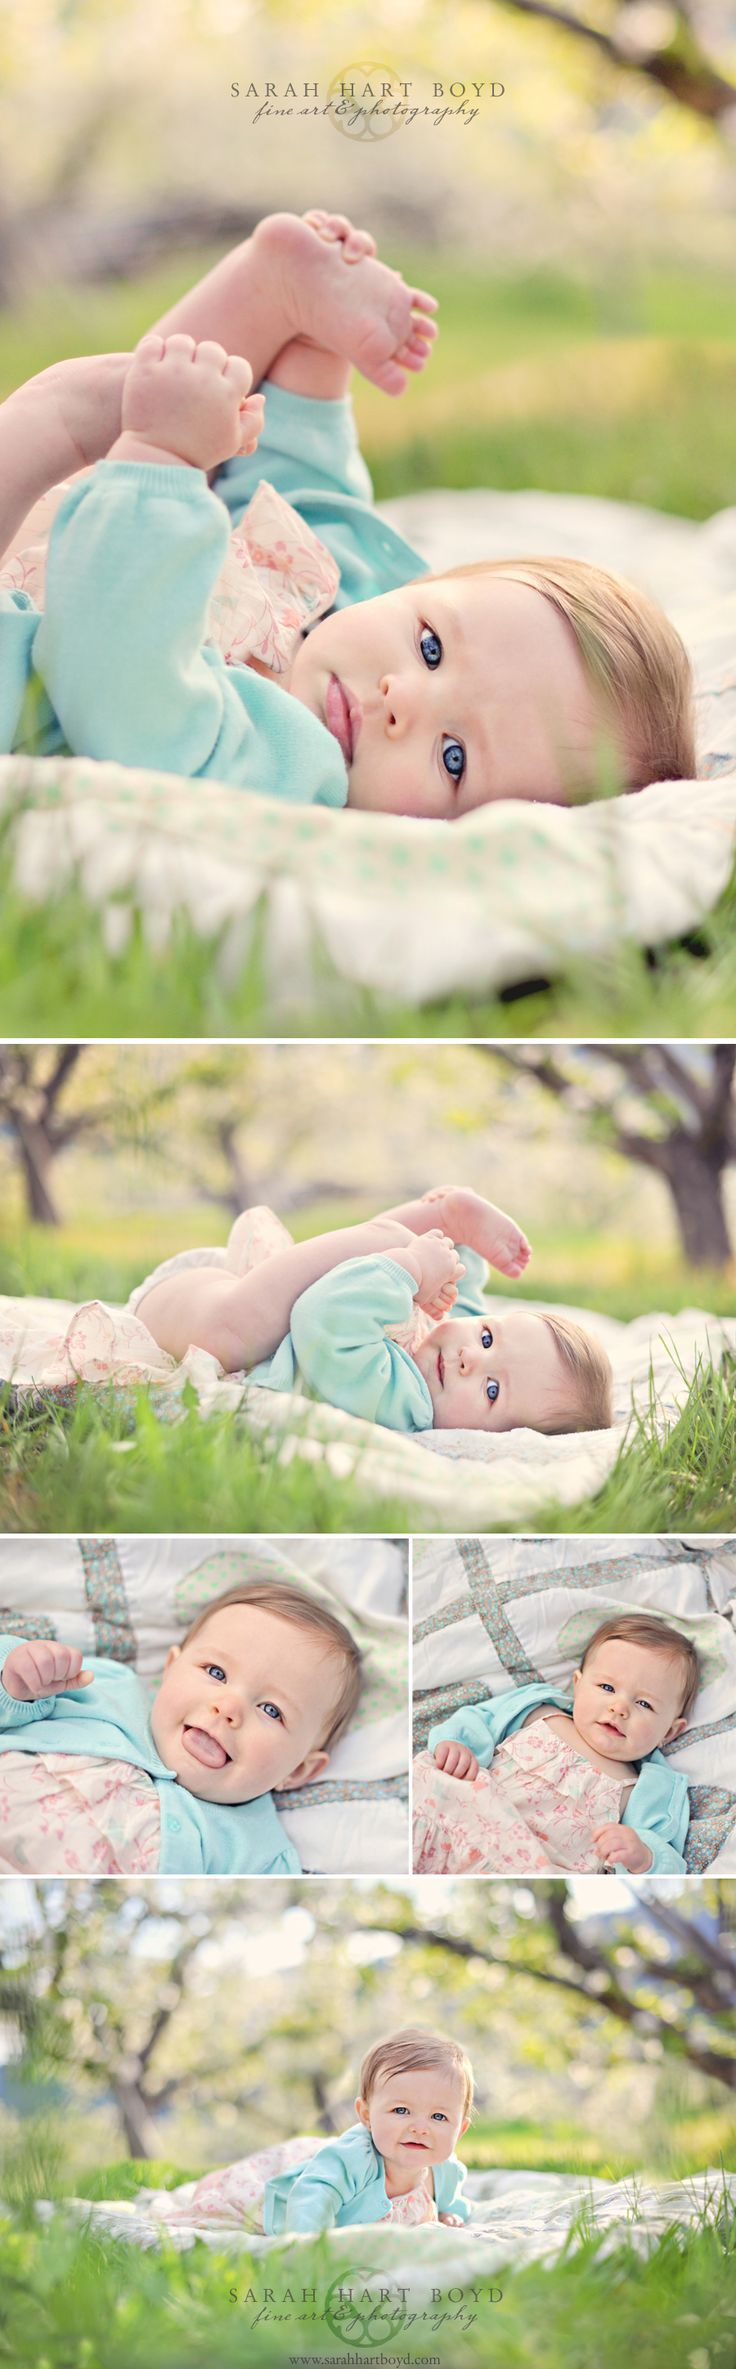 Spring Baby Photography Idea